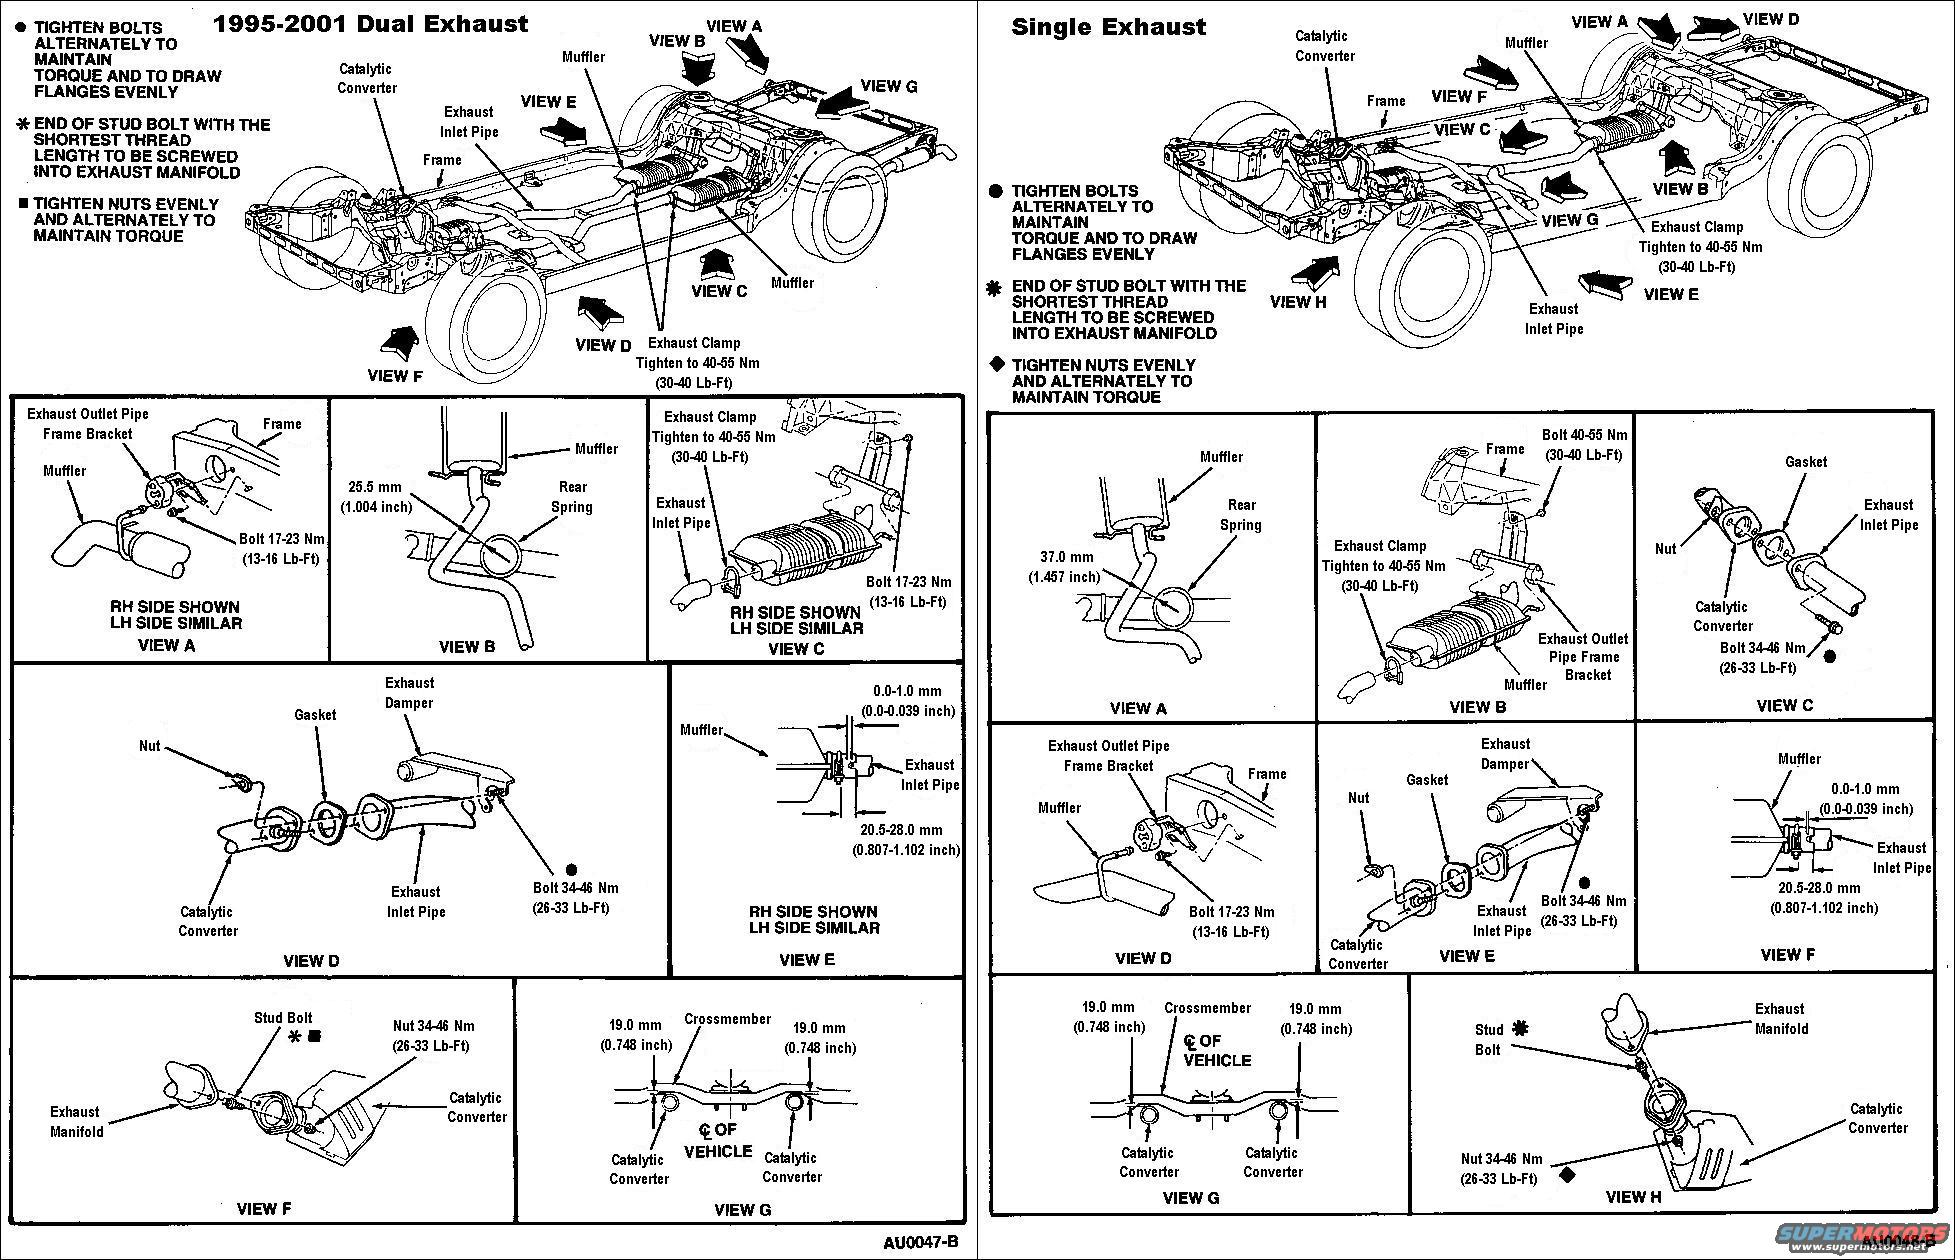 jeep cherokee wiring diagram jeep image wiring diagram 1996 jeep cherokee wiring diagram 1996 discover your wiring on jeep cherokee wiring diagram